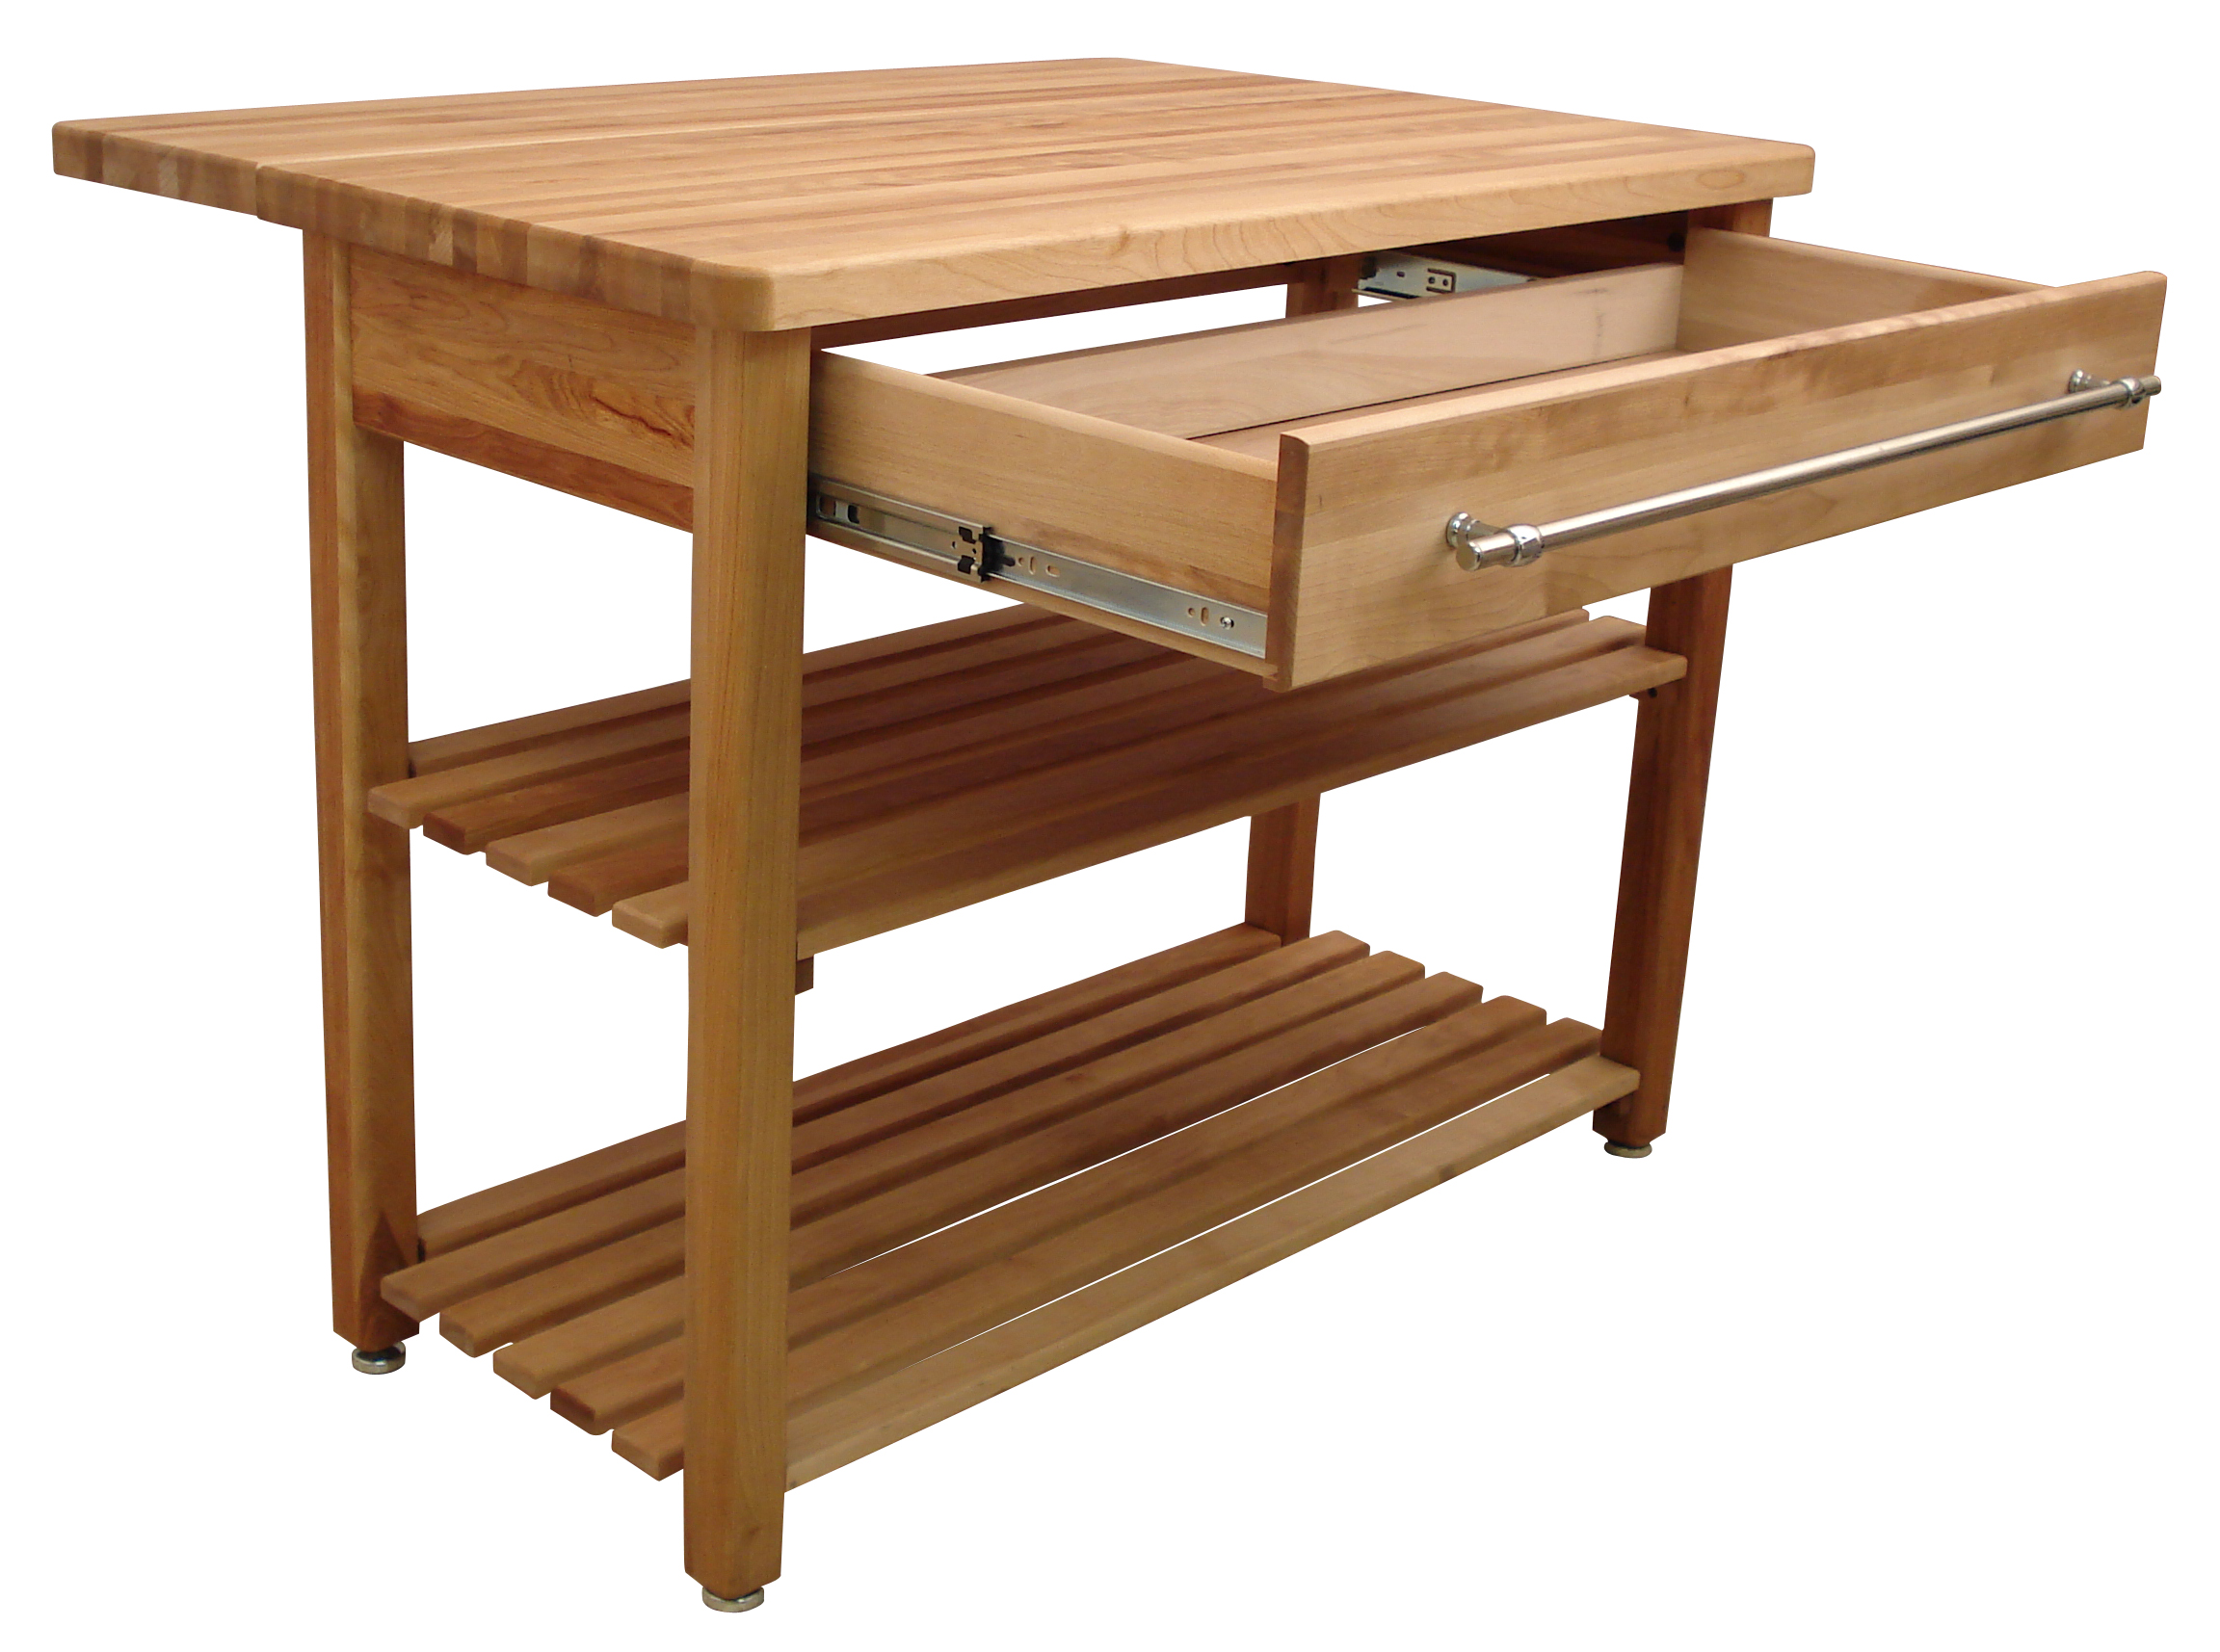 drop leaf kitchen island table stools kitchen island jp drop leaf kitchen table chairs kitchen drop leaf tables